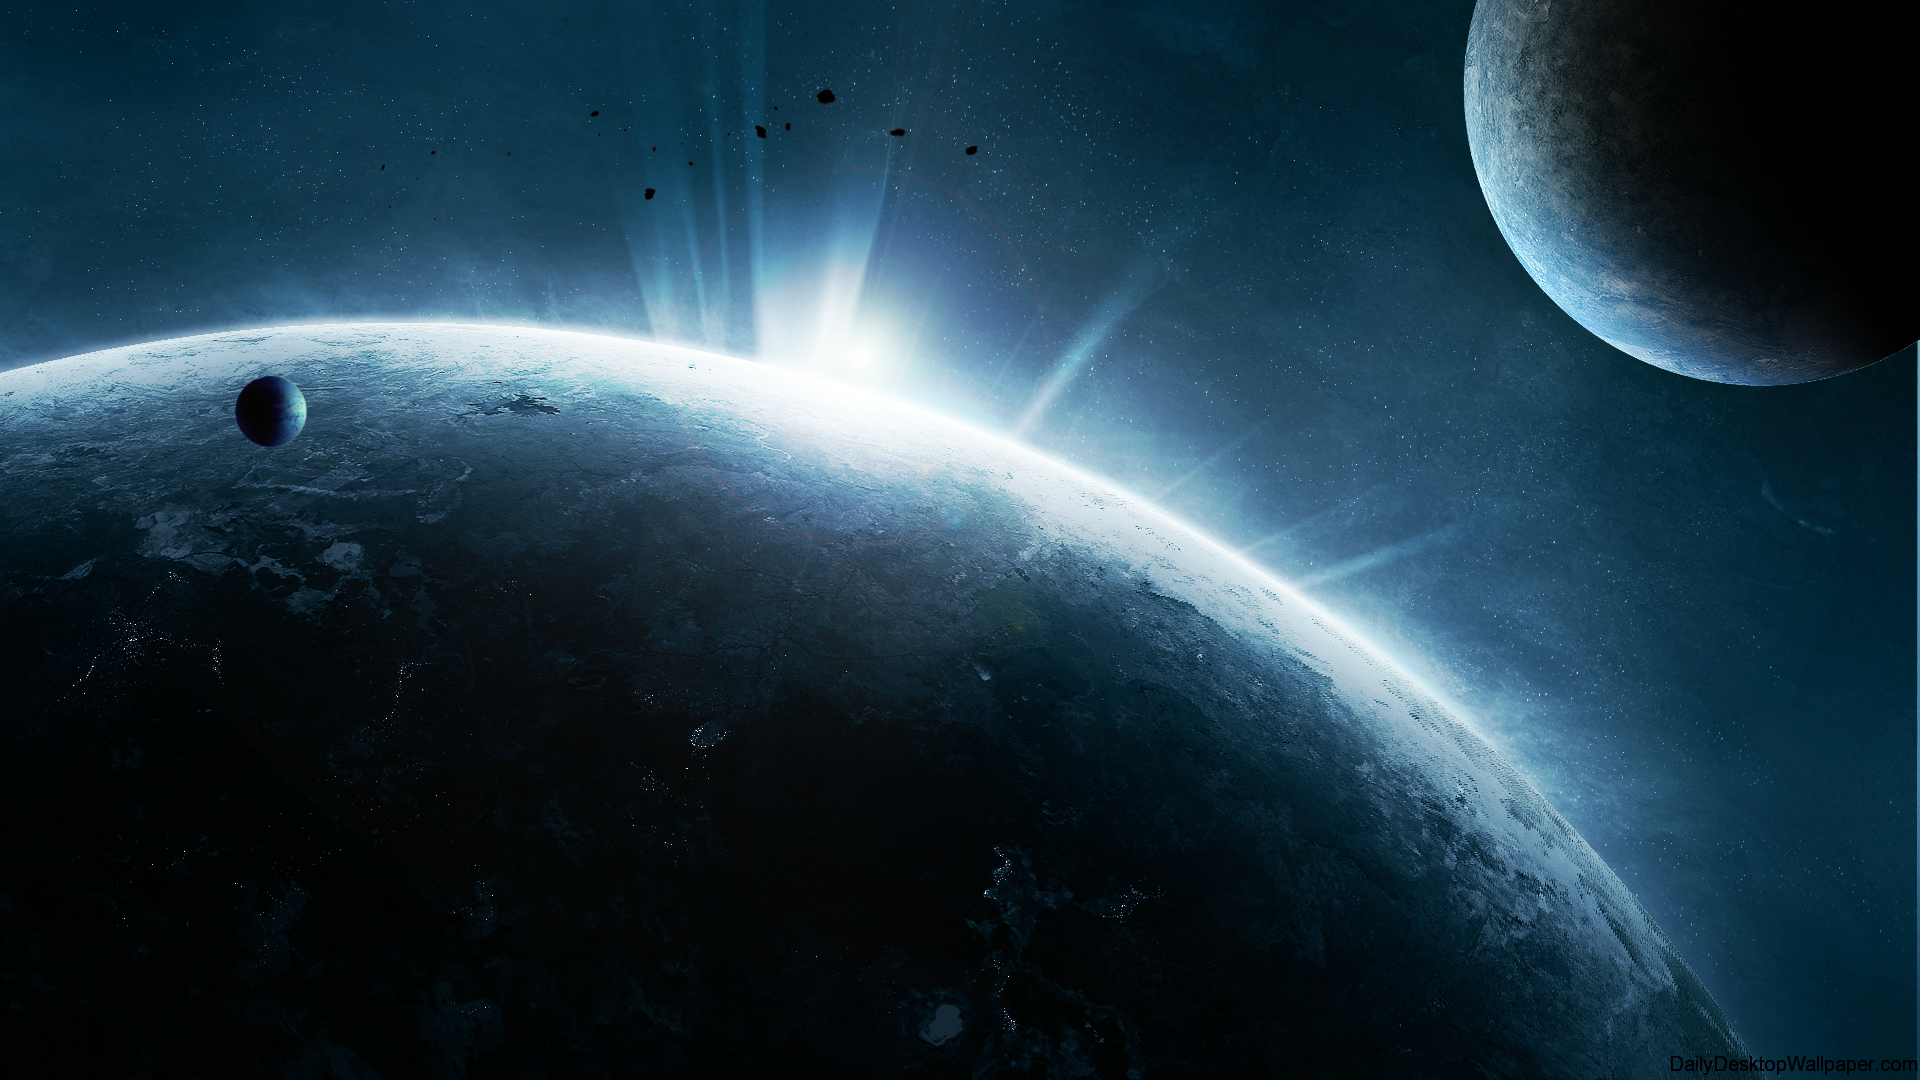 deep space hd wallpaper 1366x768 - photo #1